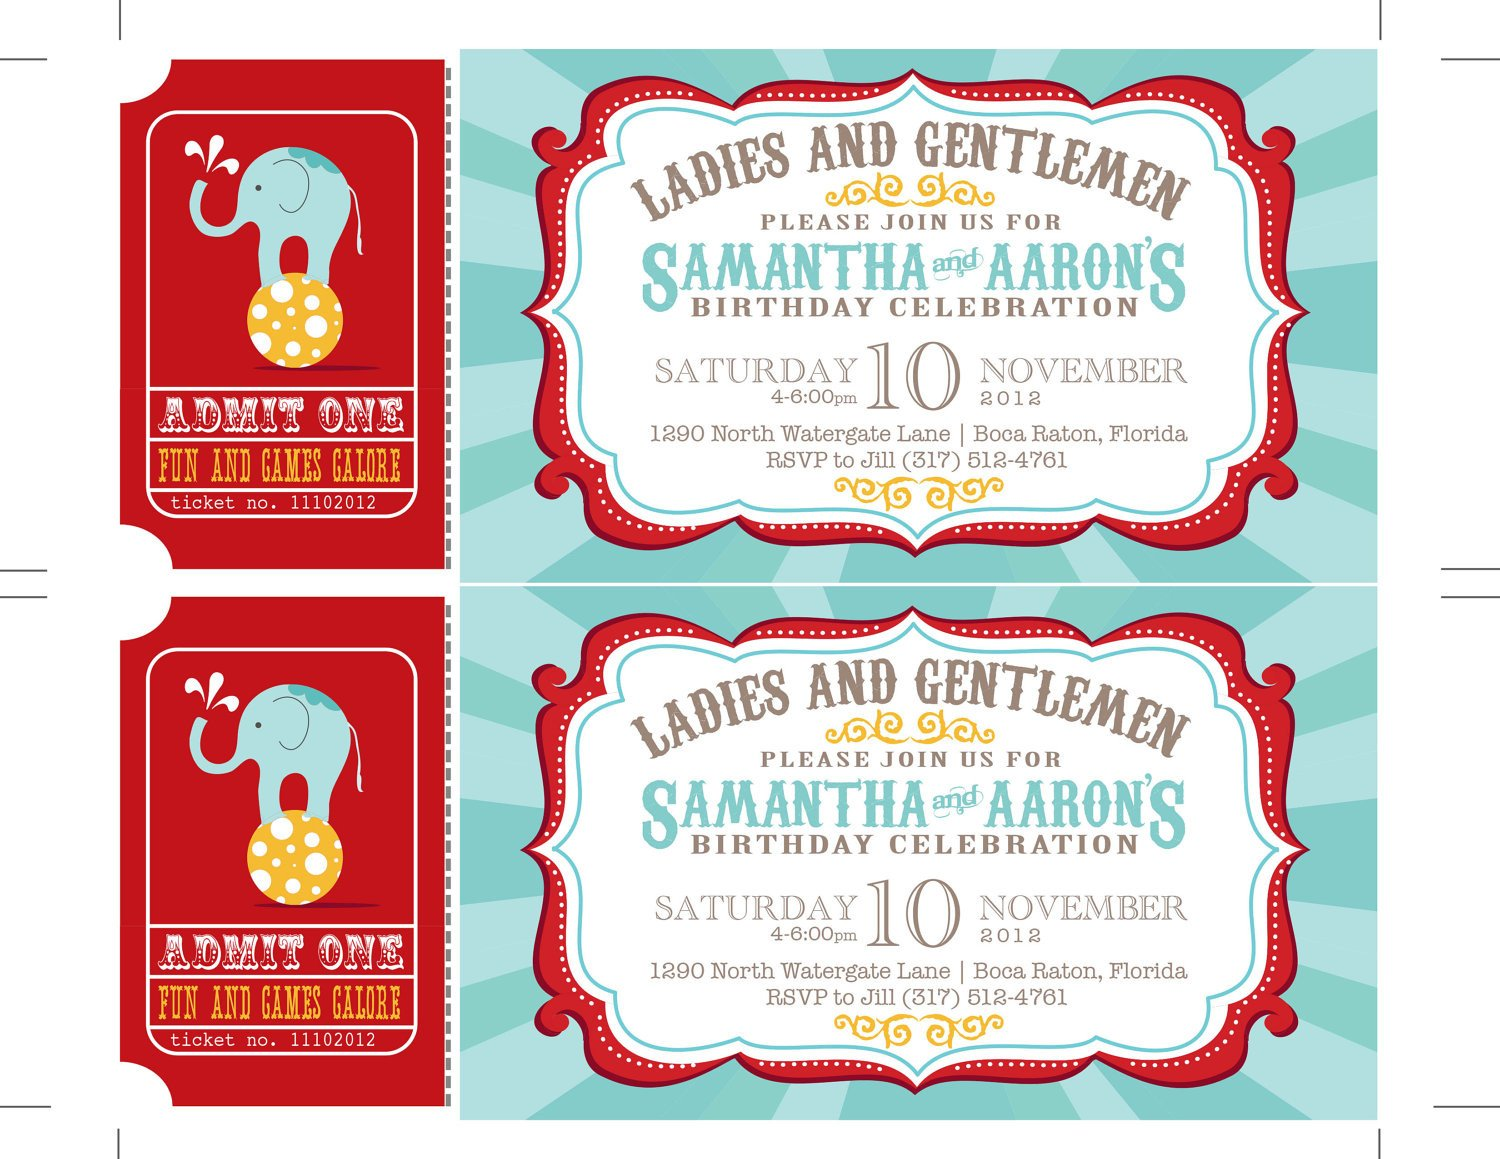 Carnival Ticket Invitation Template Free Reserved Carnival Invitations Circus Invitations Ticket